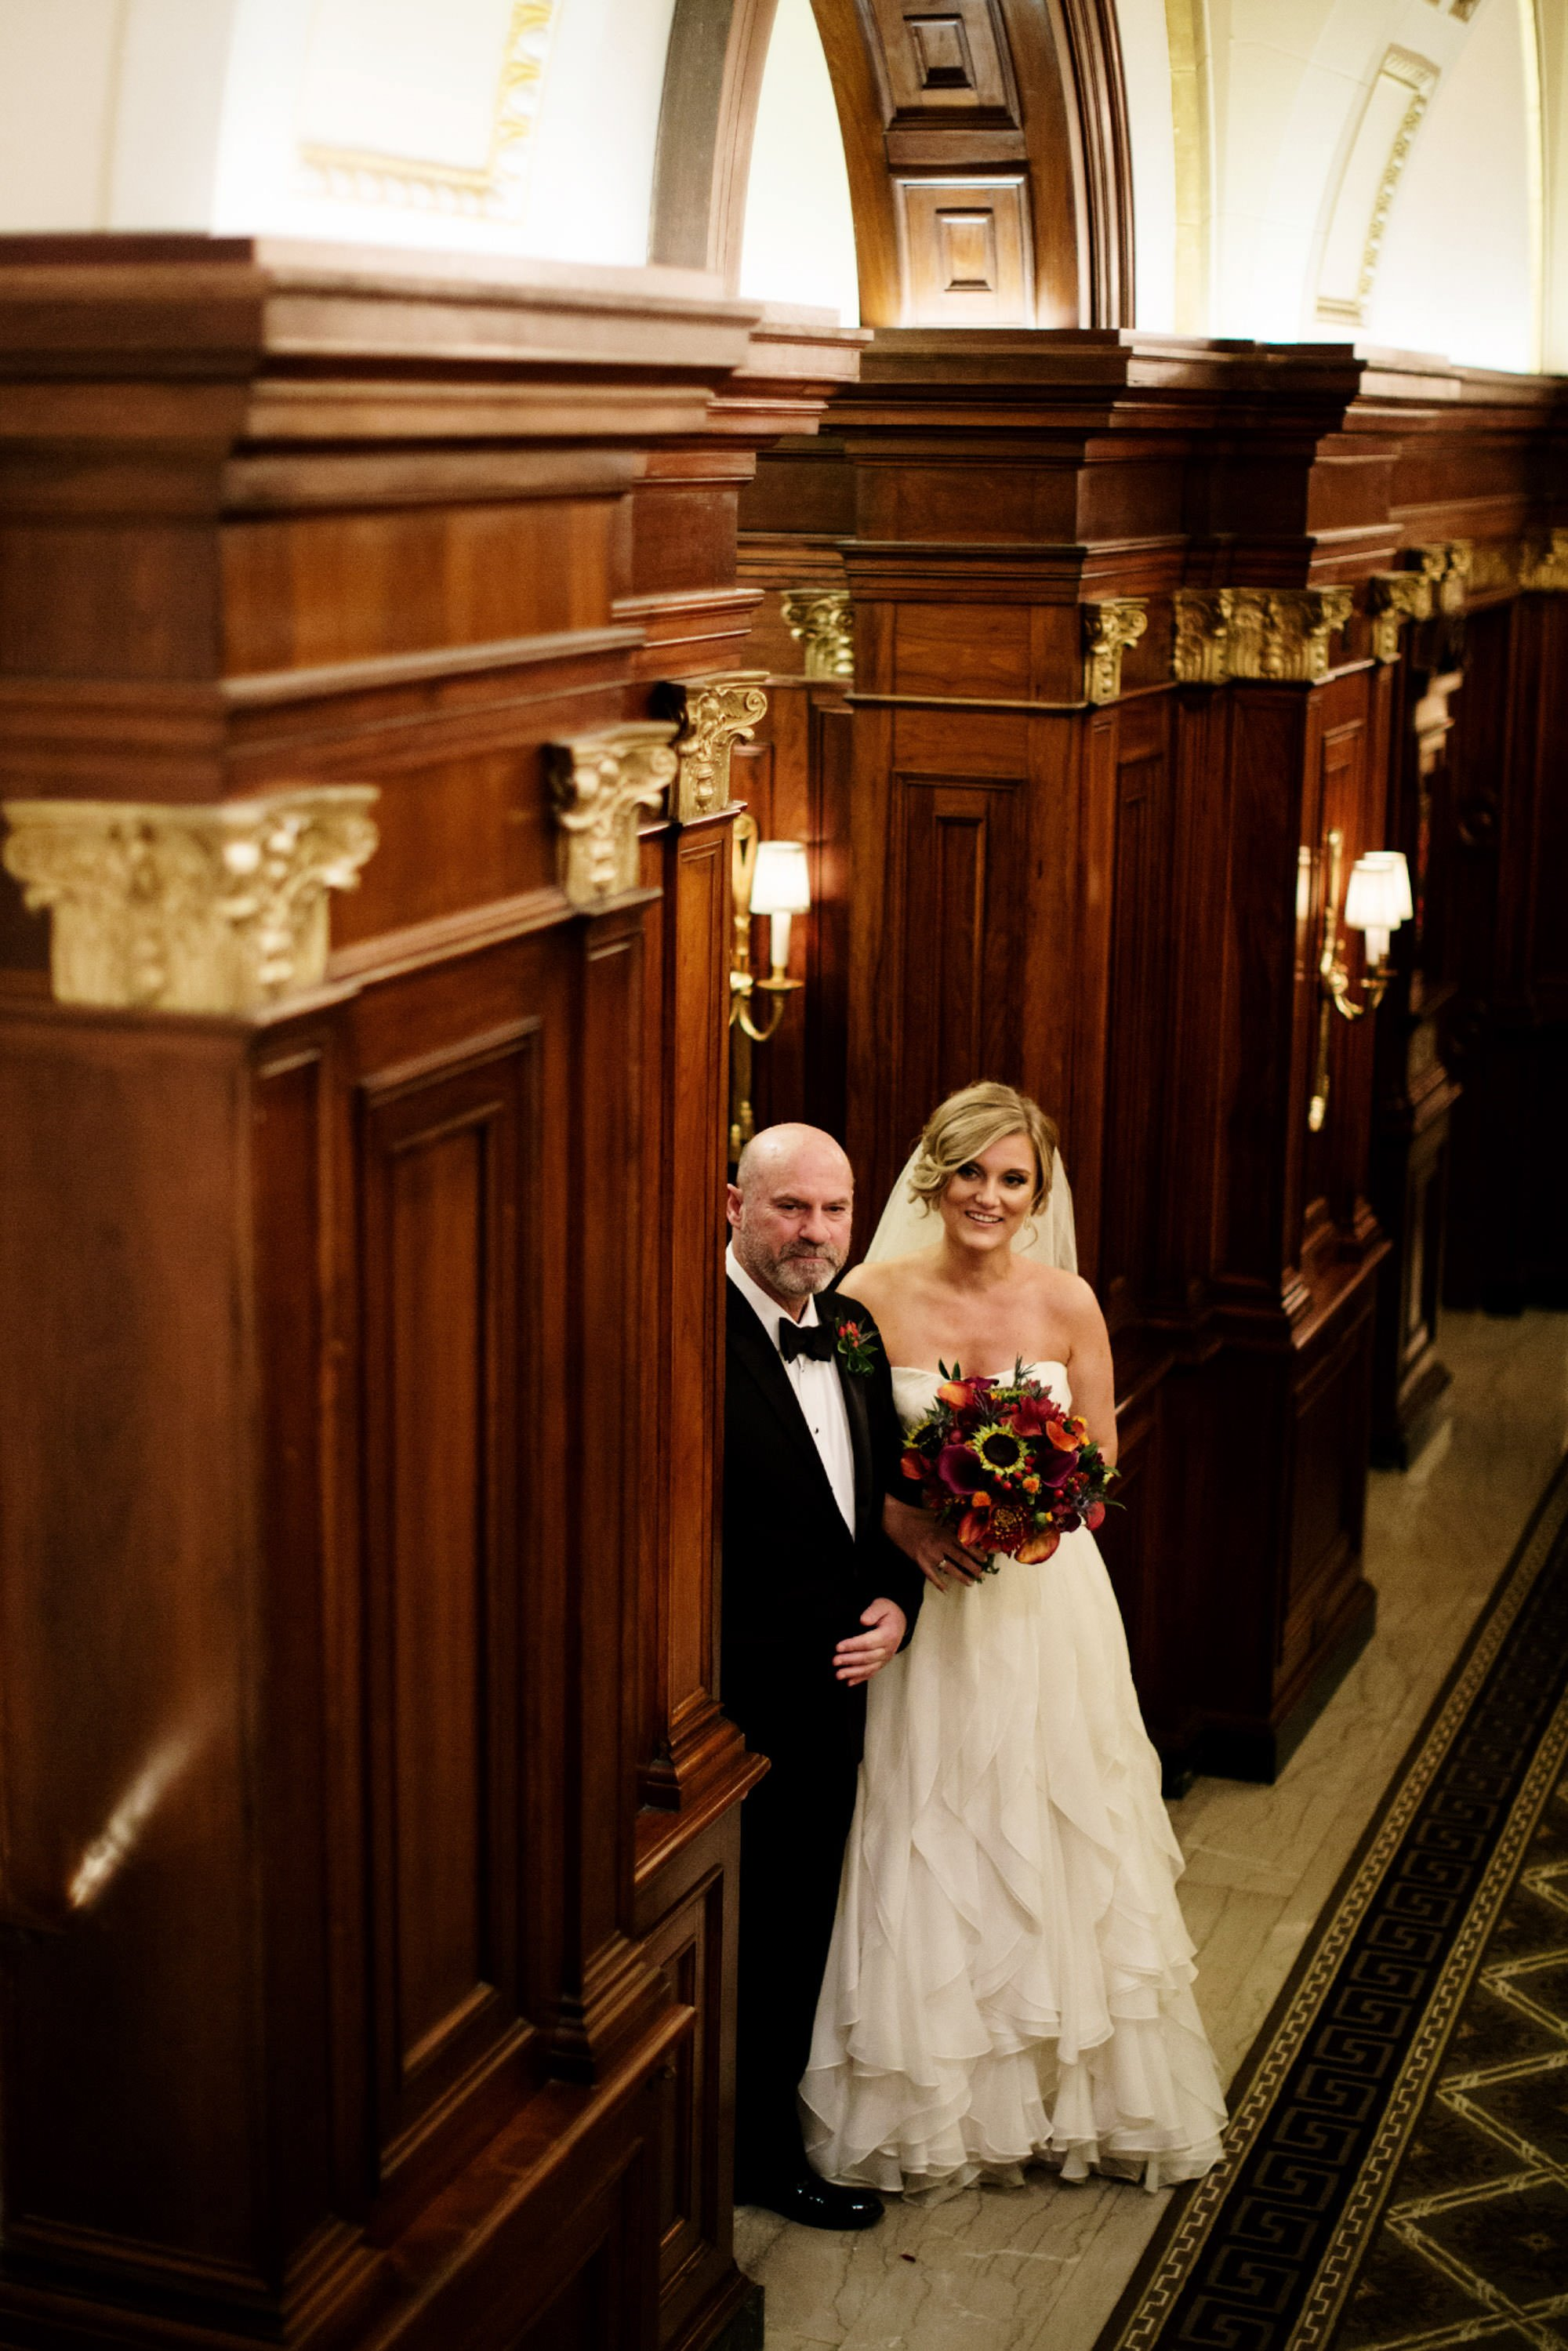 The bride waits with her father in the lobby of the Hay Adams Hotel in Washington, DC before the wedding ceremony.